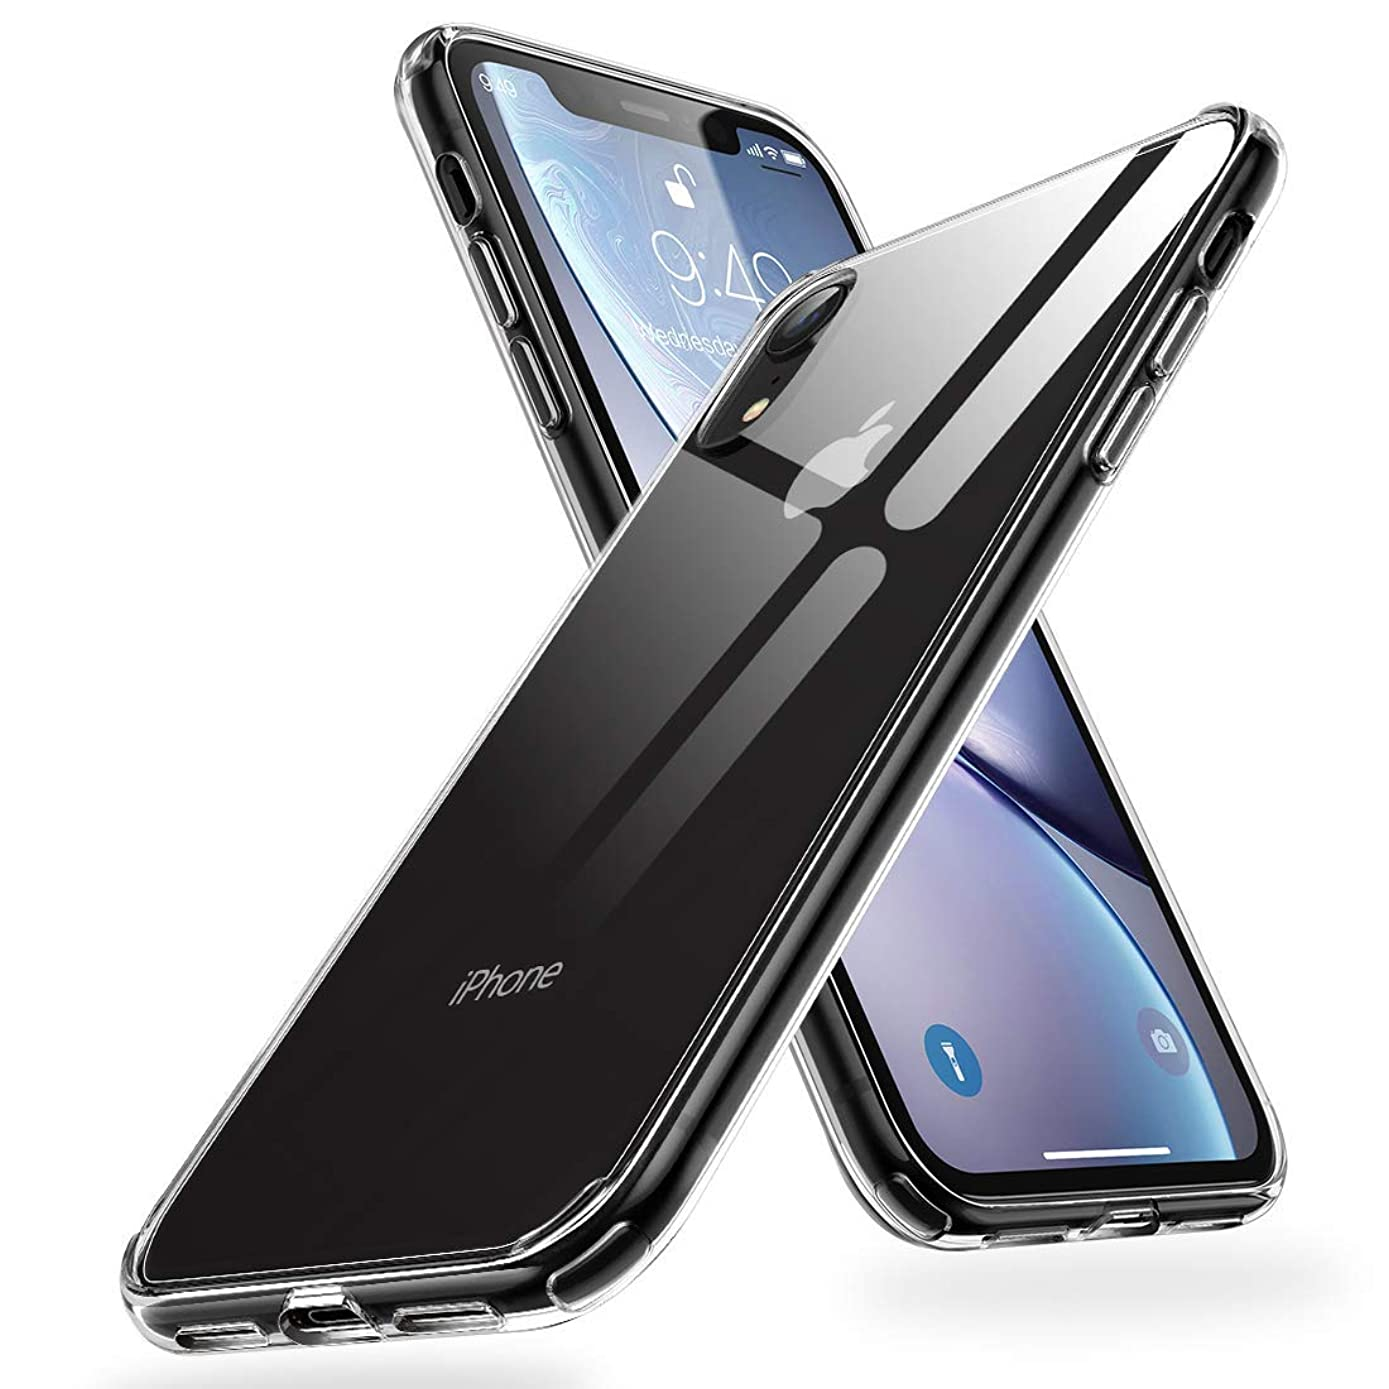 Humixx Crystal Clear iPhone XR Case,[Wireless Charging Supported] Bayer Material TPU Backboard Case with Soft Edges, Shockproof and Anti-Drop Protection Case Designed for Apple iPhone Xr(2017)-Clear